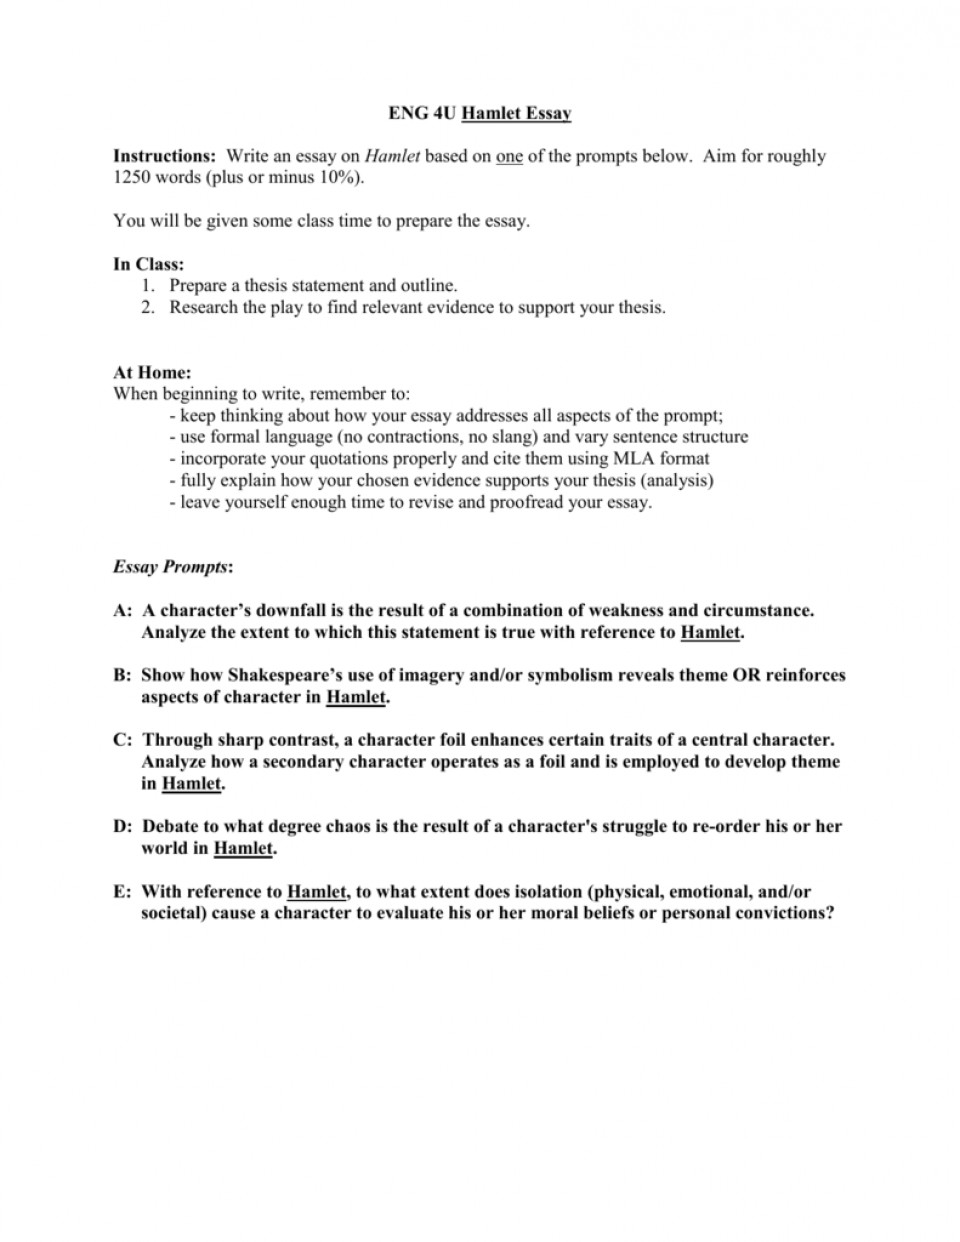 005 Essay Example 008038423 1 University Of Chicago Striking Prompts Illinois Prompt Loyola 960